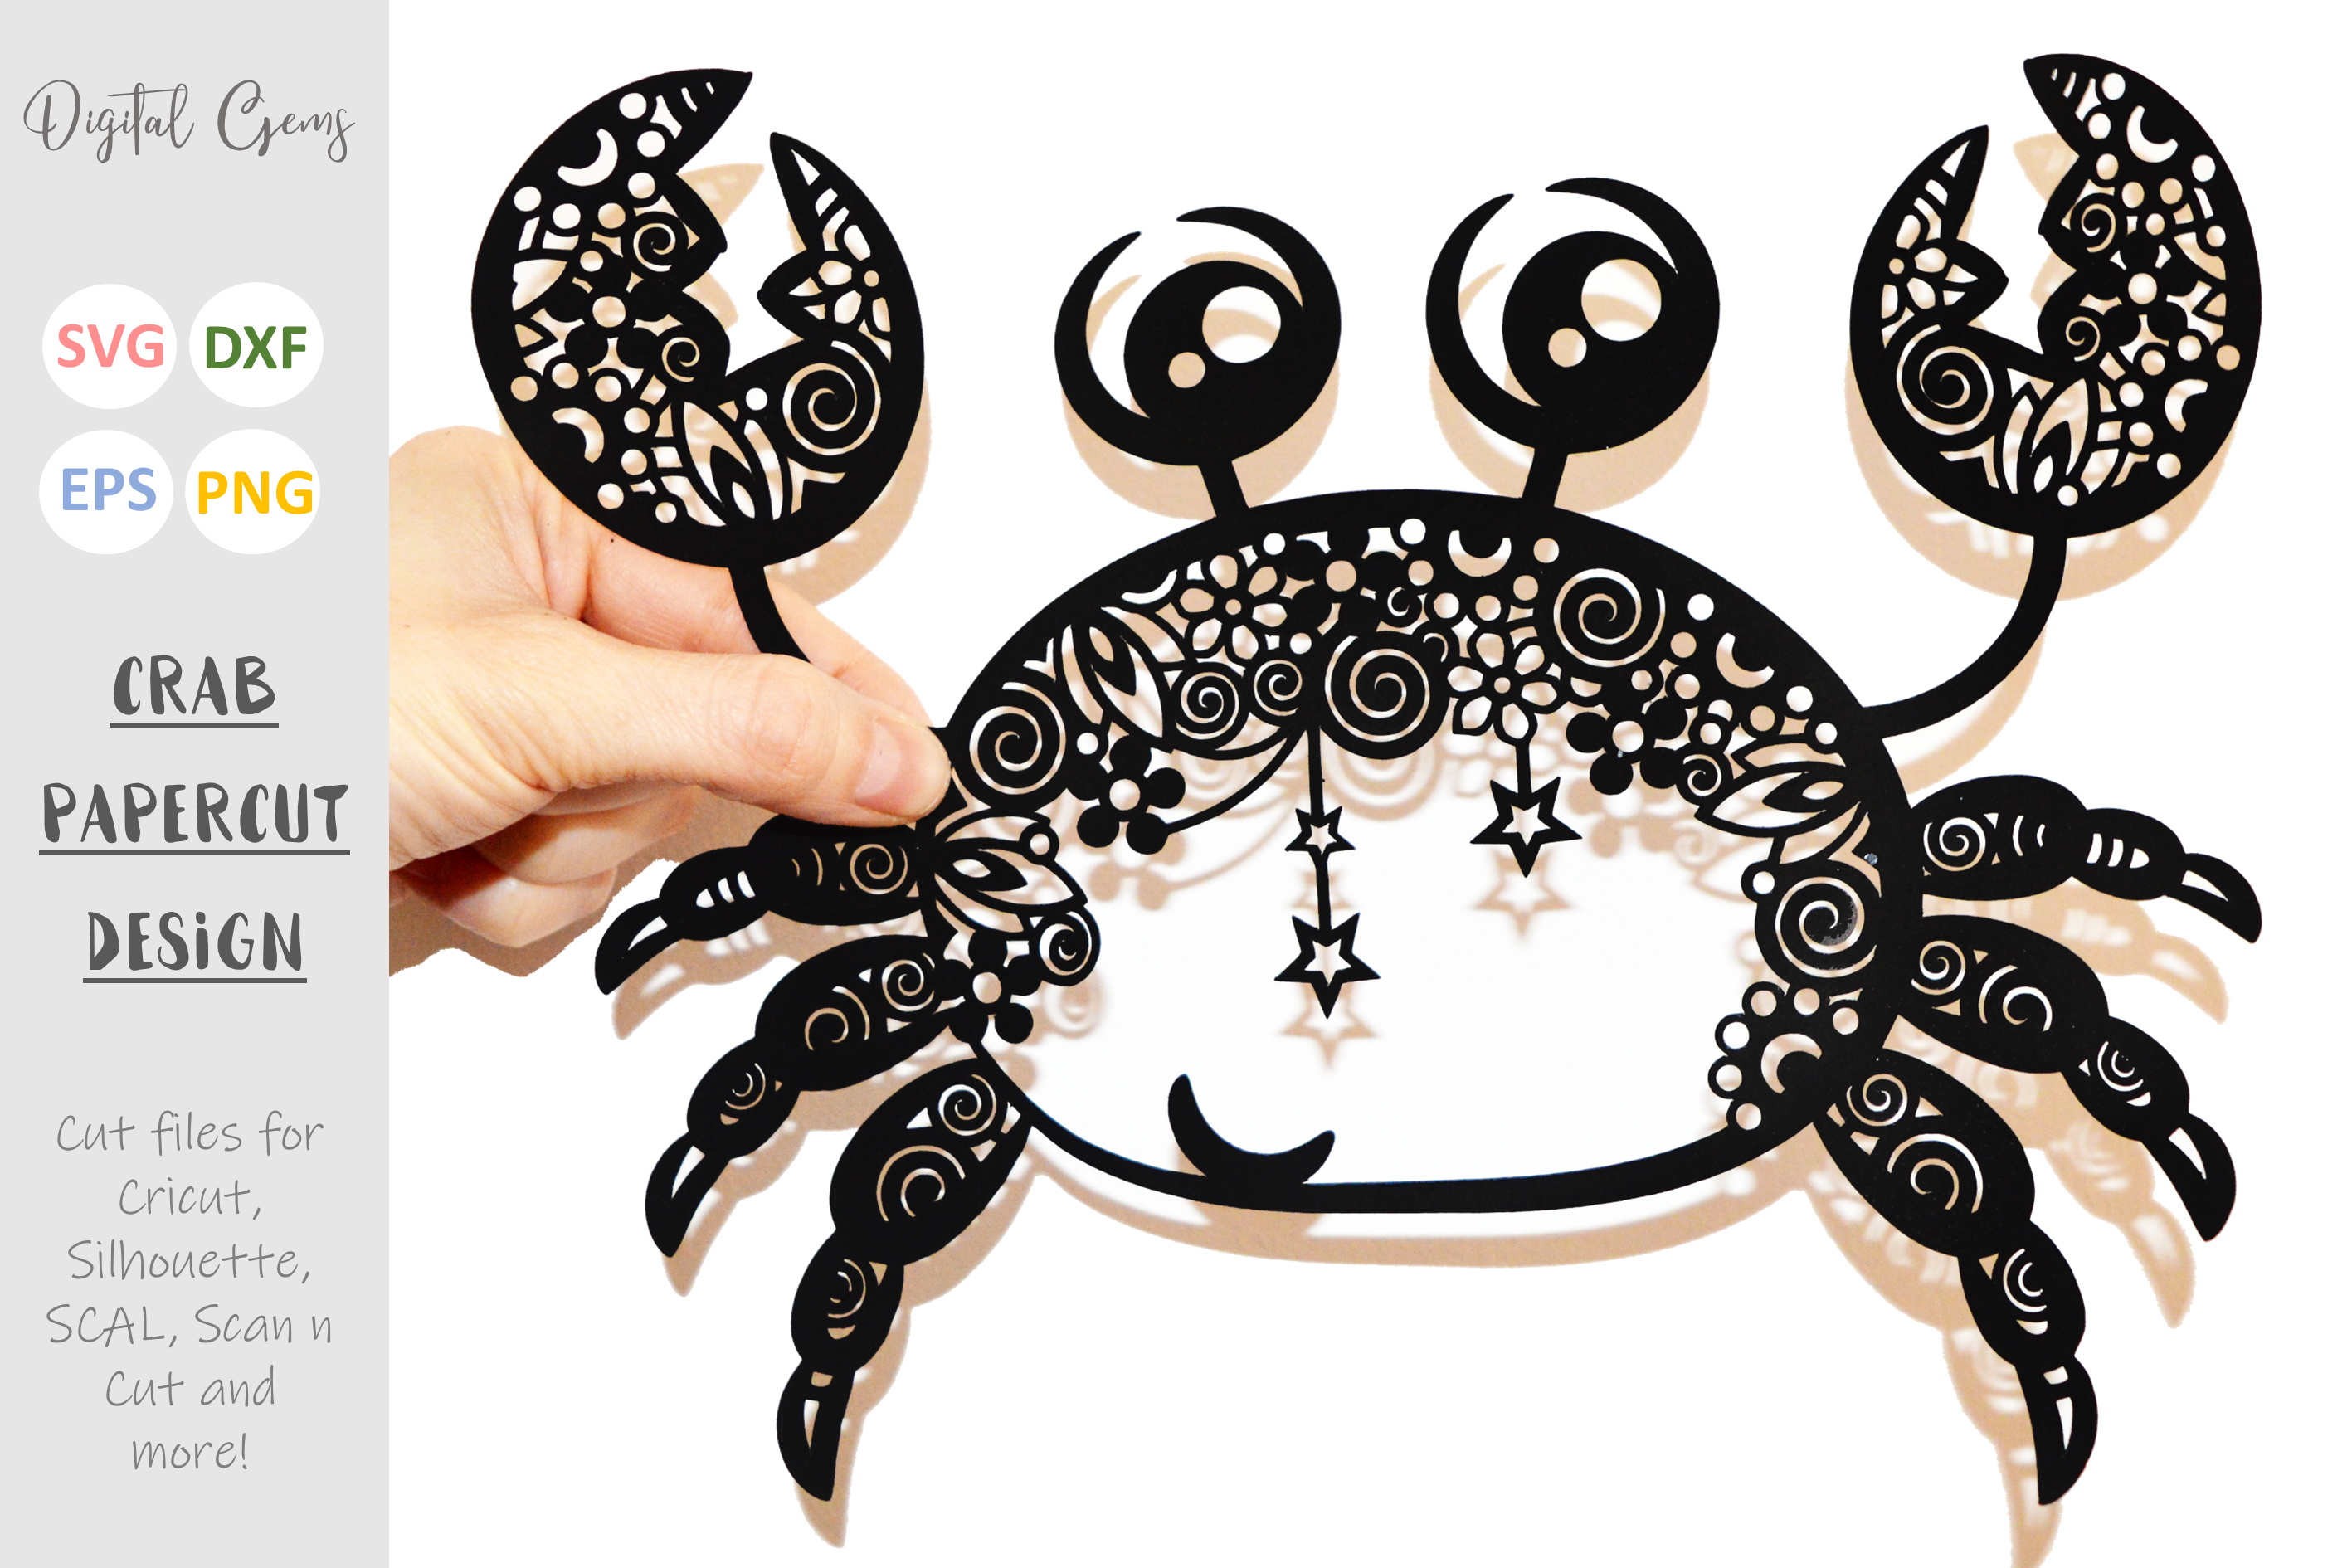 Crab paper cut SVG / DXF / EPS files example image 1